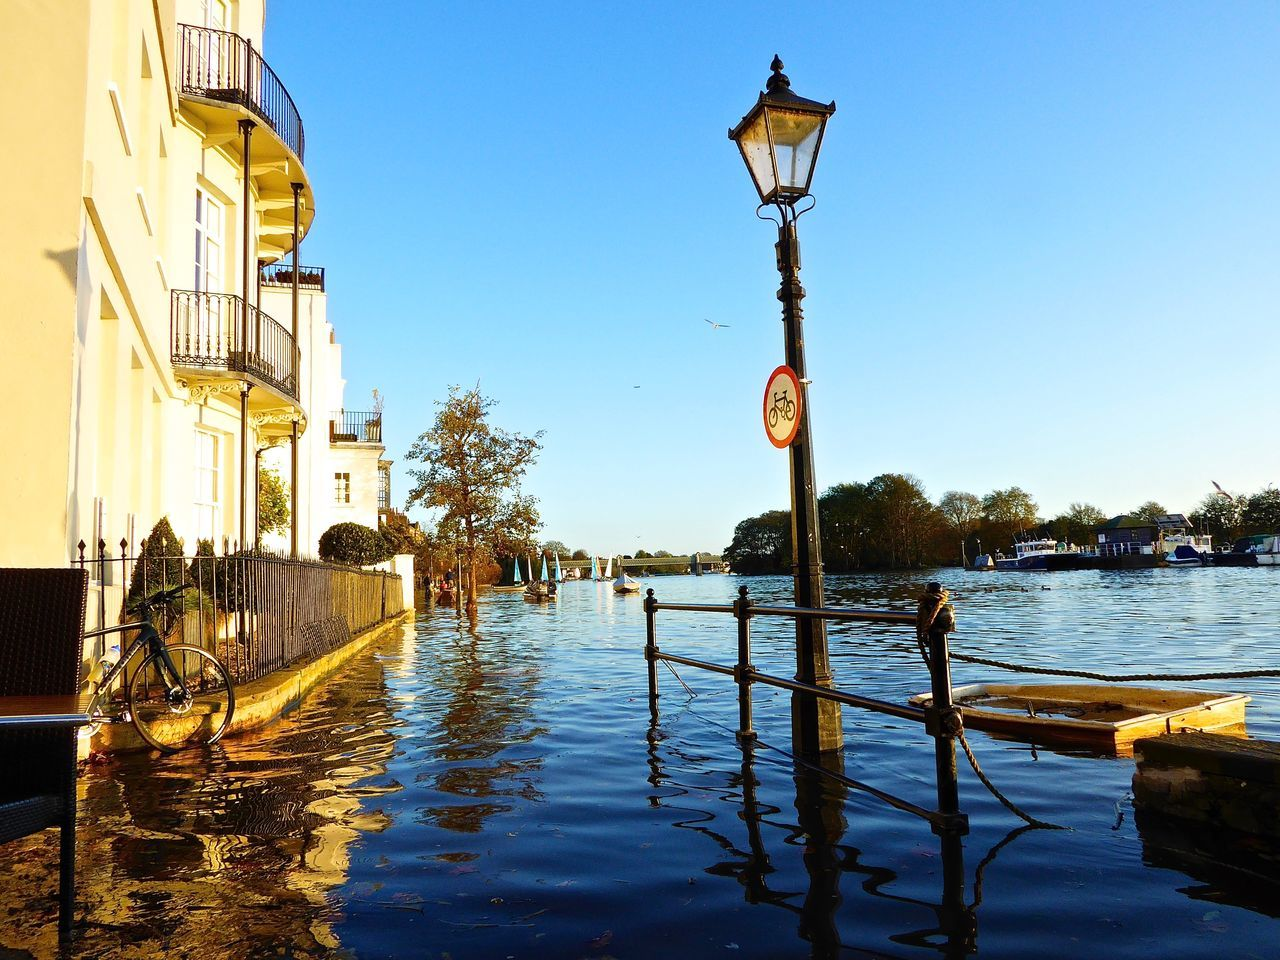 ChiswickRiverside Chiswick Thames Thamesriver Thames River Thames Path Thames River Side Flooded Flooded Streets Flooded River